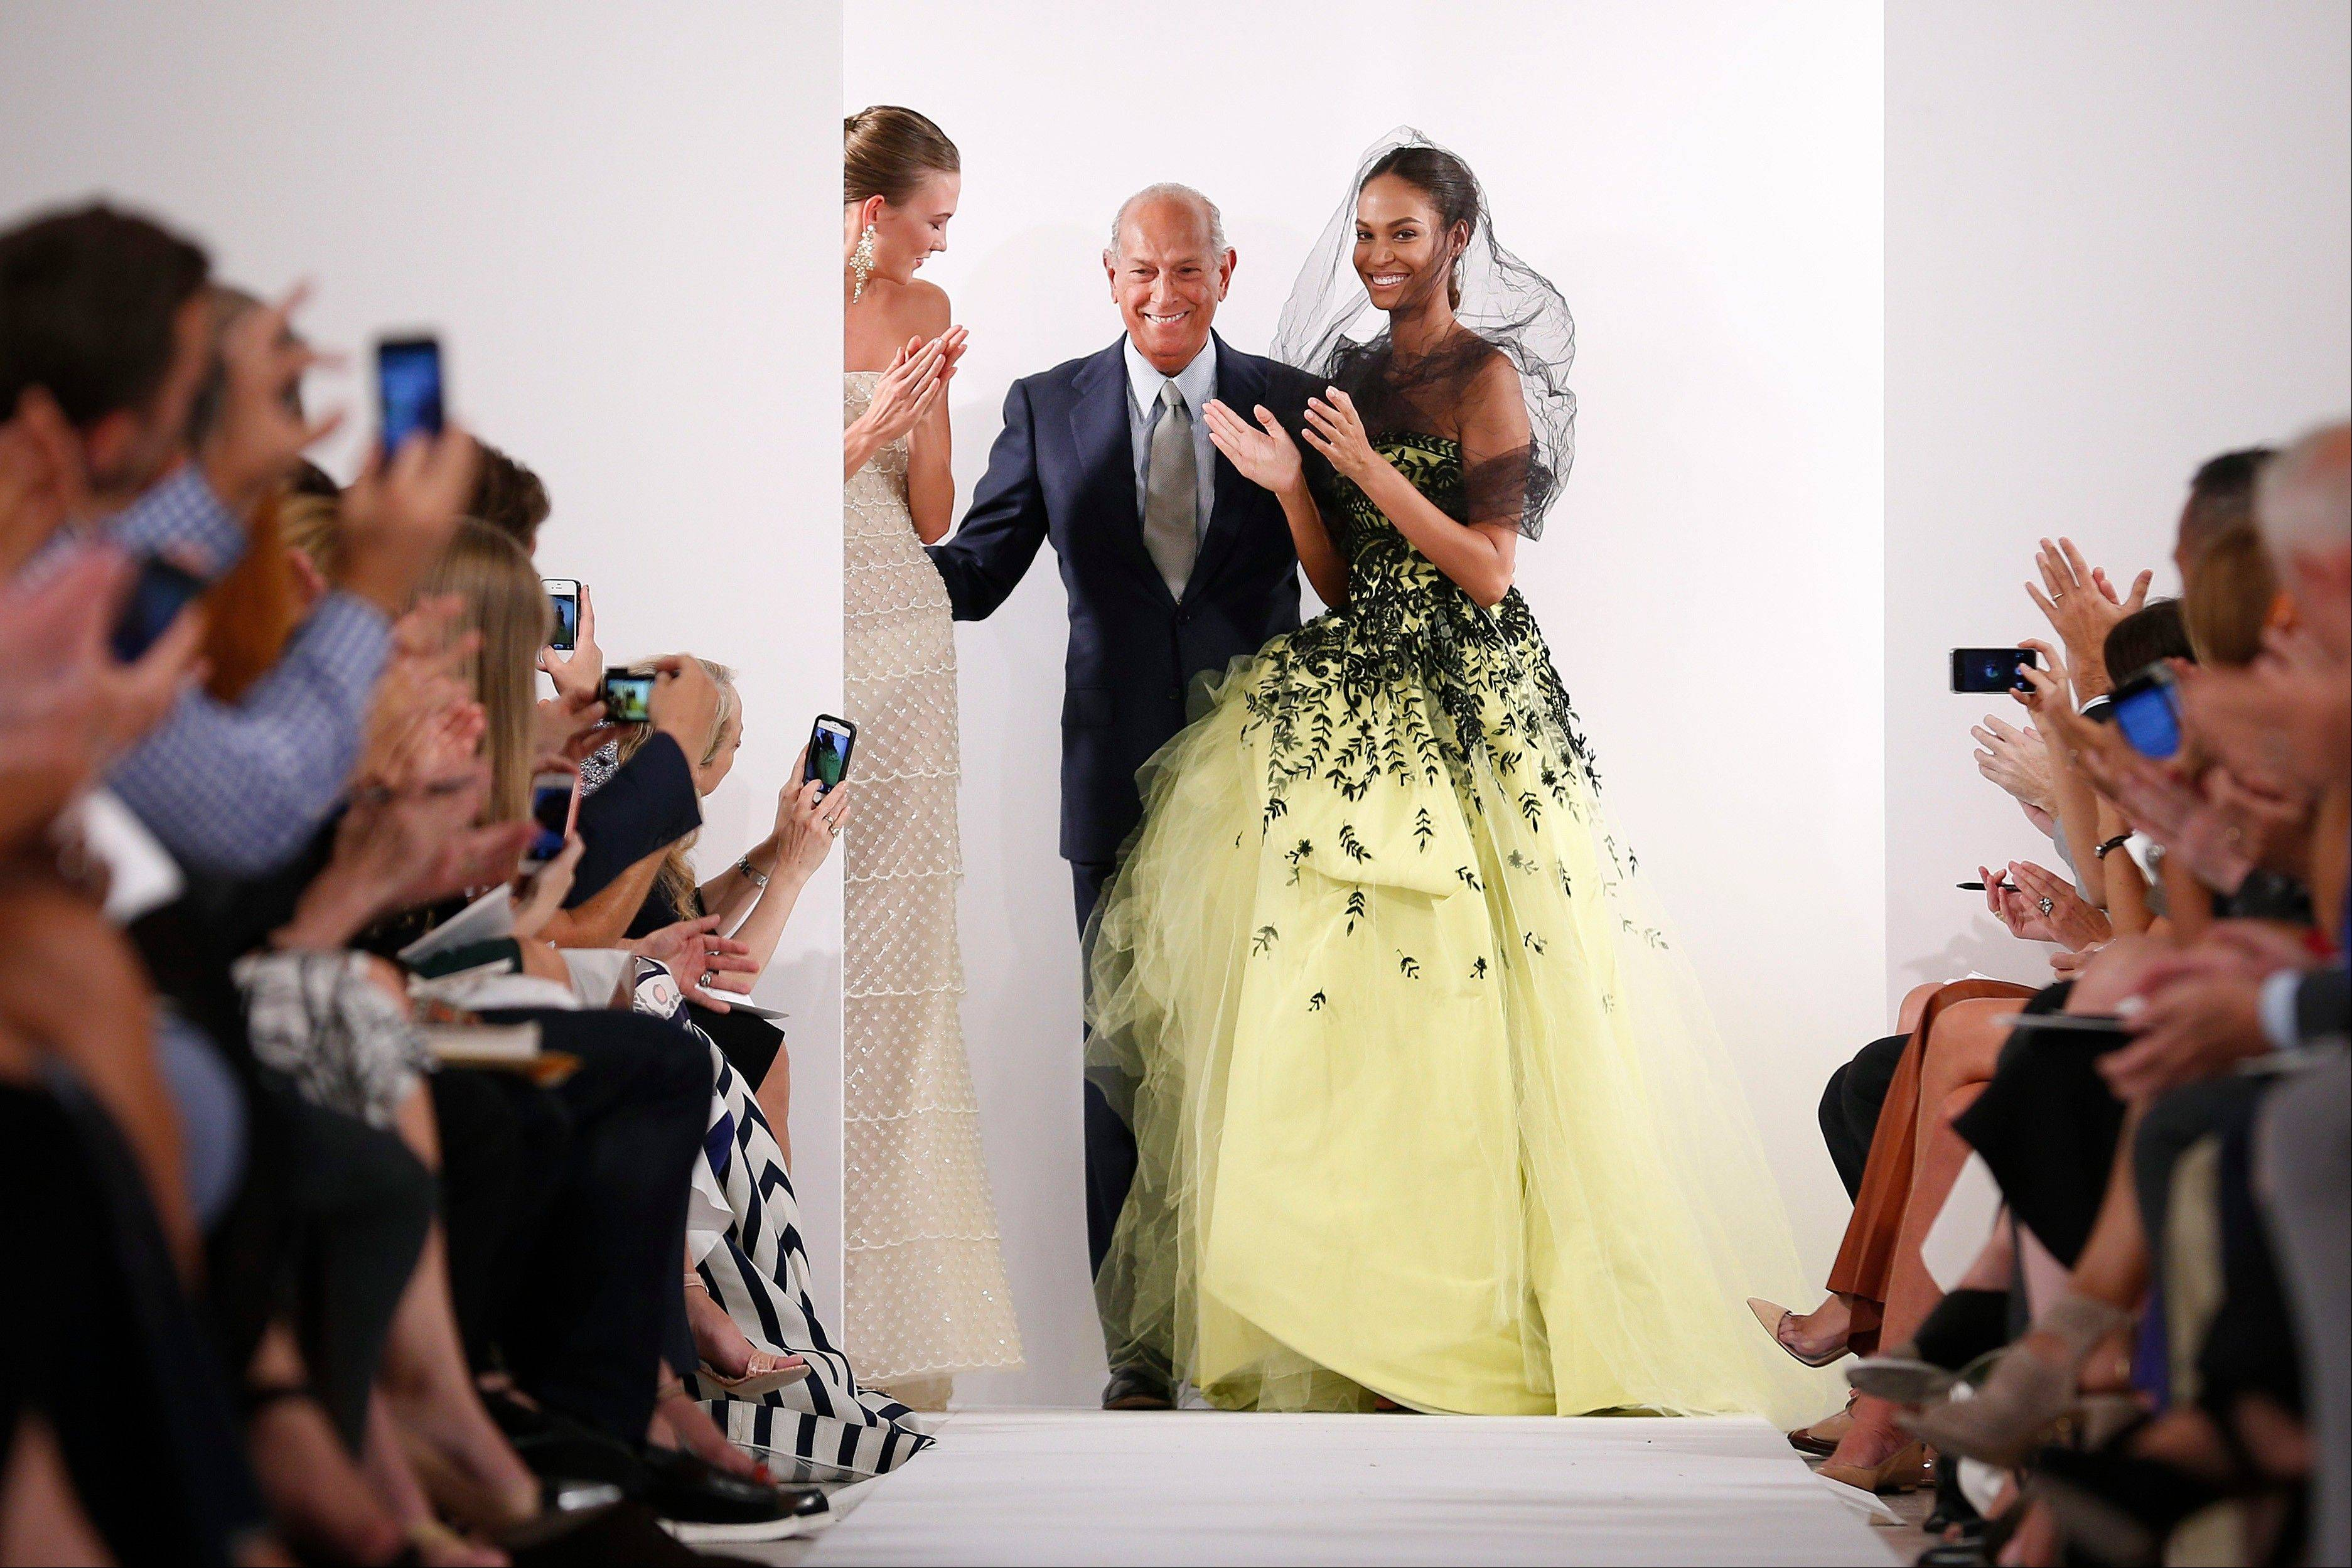 Designer Oscar de la Renta, center, greets the audience after his Spring 2014 collection was modeled during Fashion Week in New York.